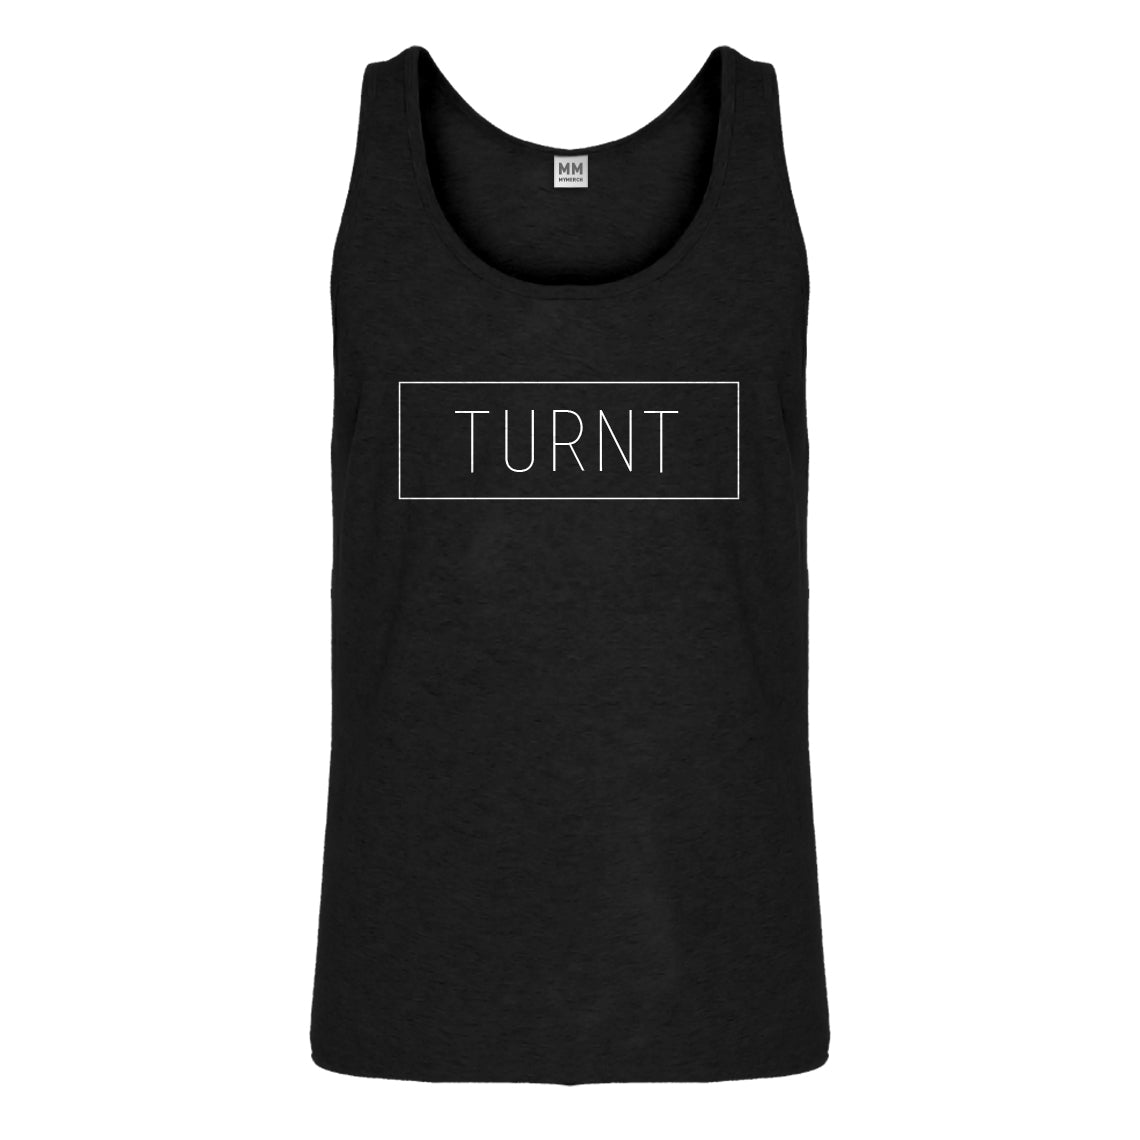 Tank TURNT Mens Jersey Tank Top